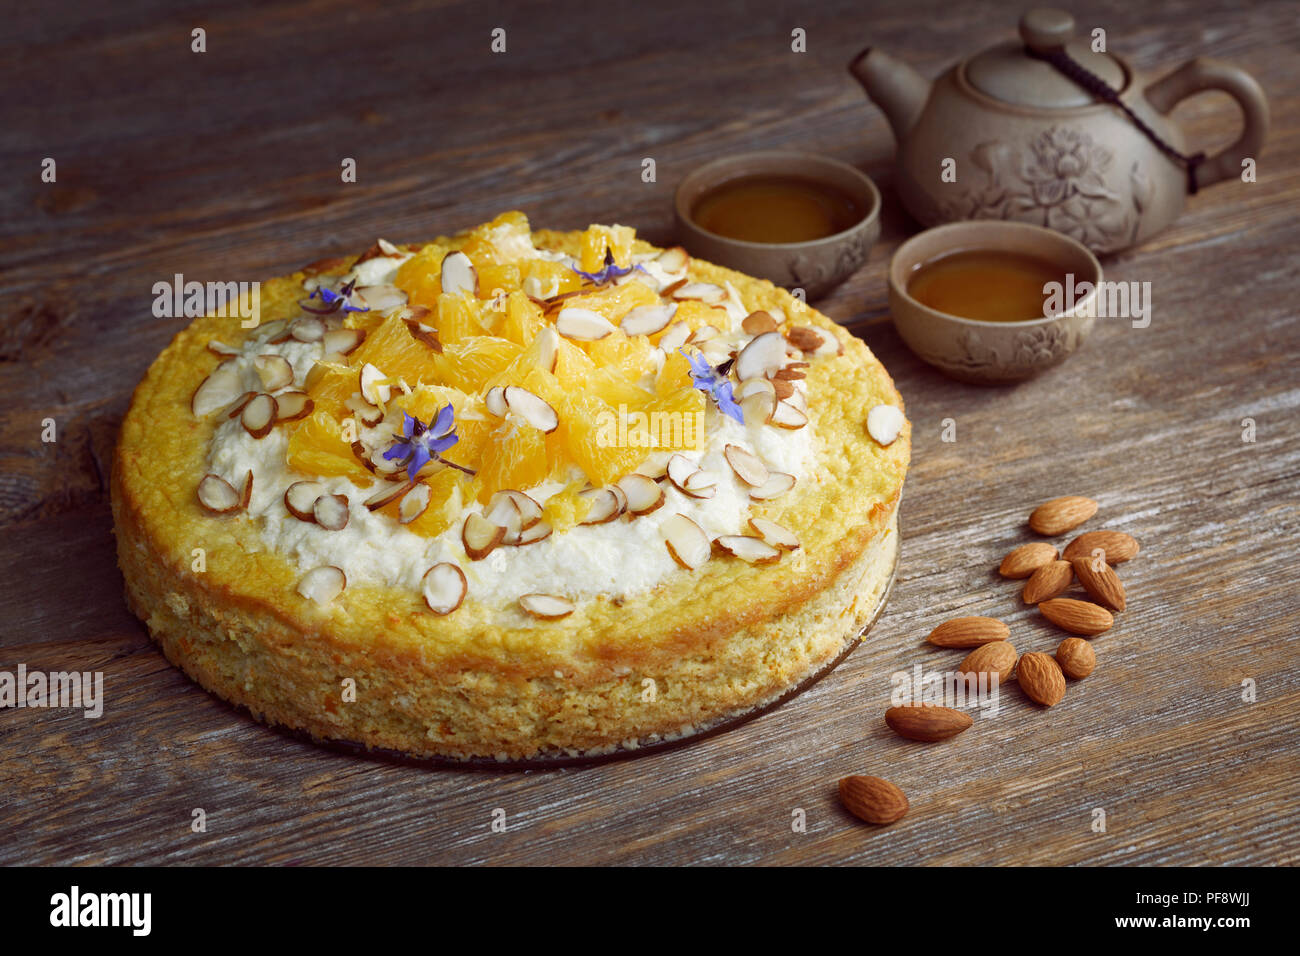 Healthy home-made flourless, sugar-free, dairy-free vegan cake made of almond flour, oranges and coconut, artistic food still life with a clay teapot  - Stock Image